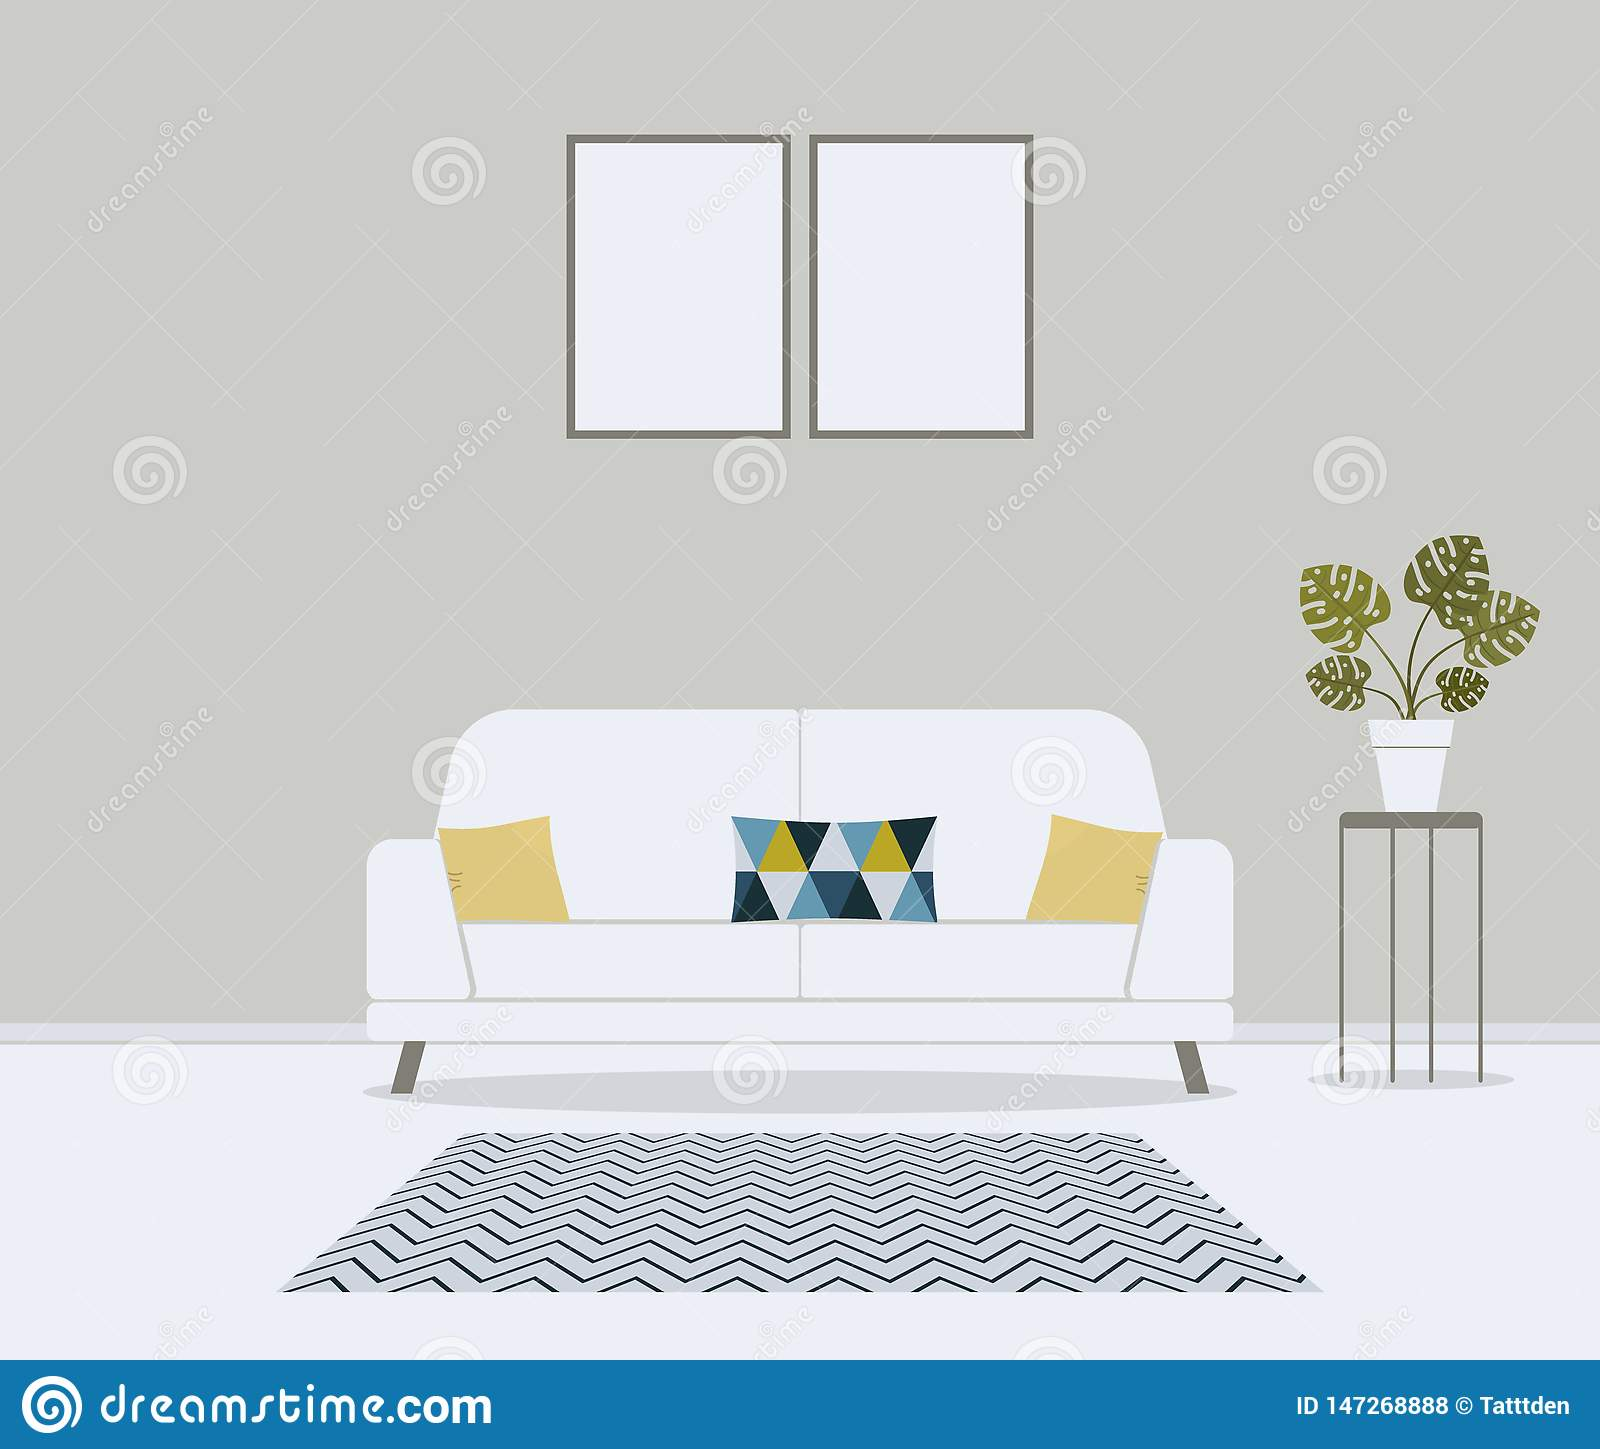 Modern minimalistic scandinavian style living room. Furniture for home interior: sofa, couch, cushions in cute pattern,carpet,